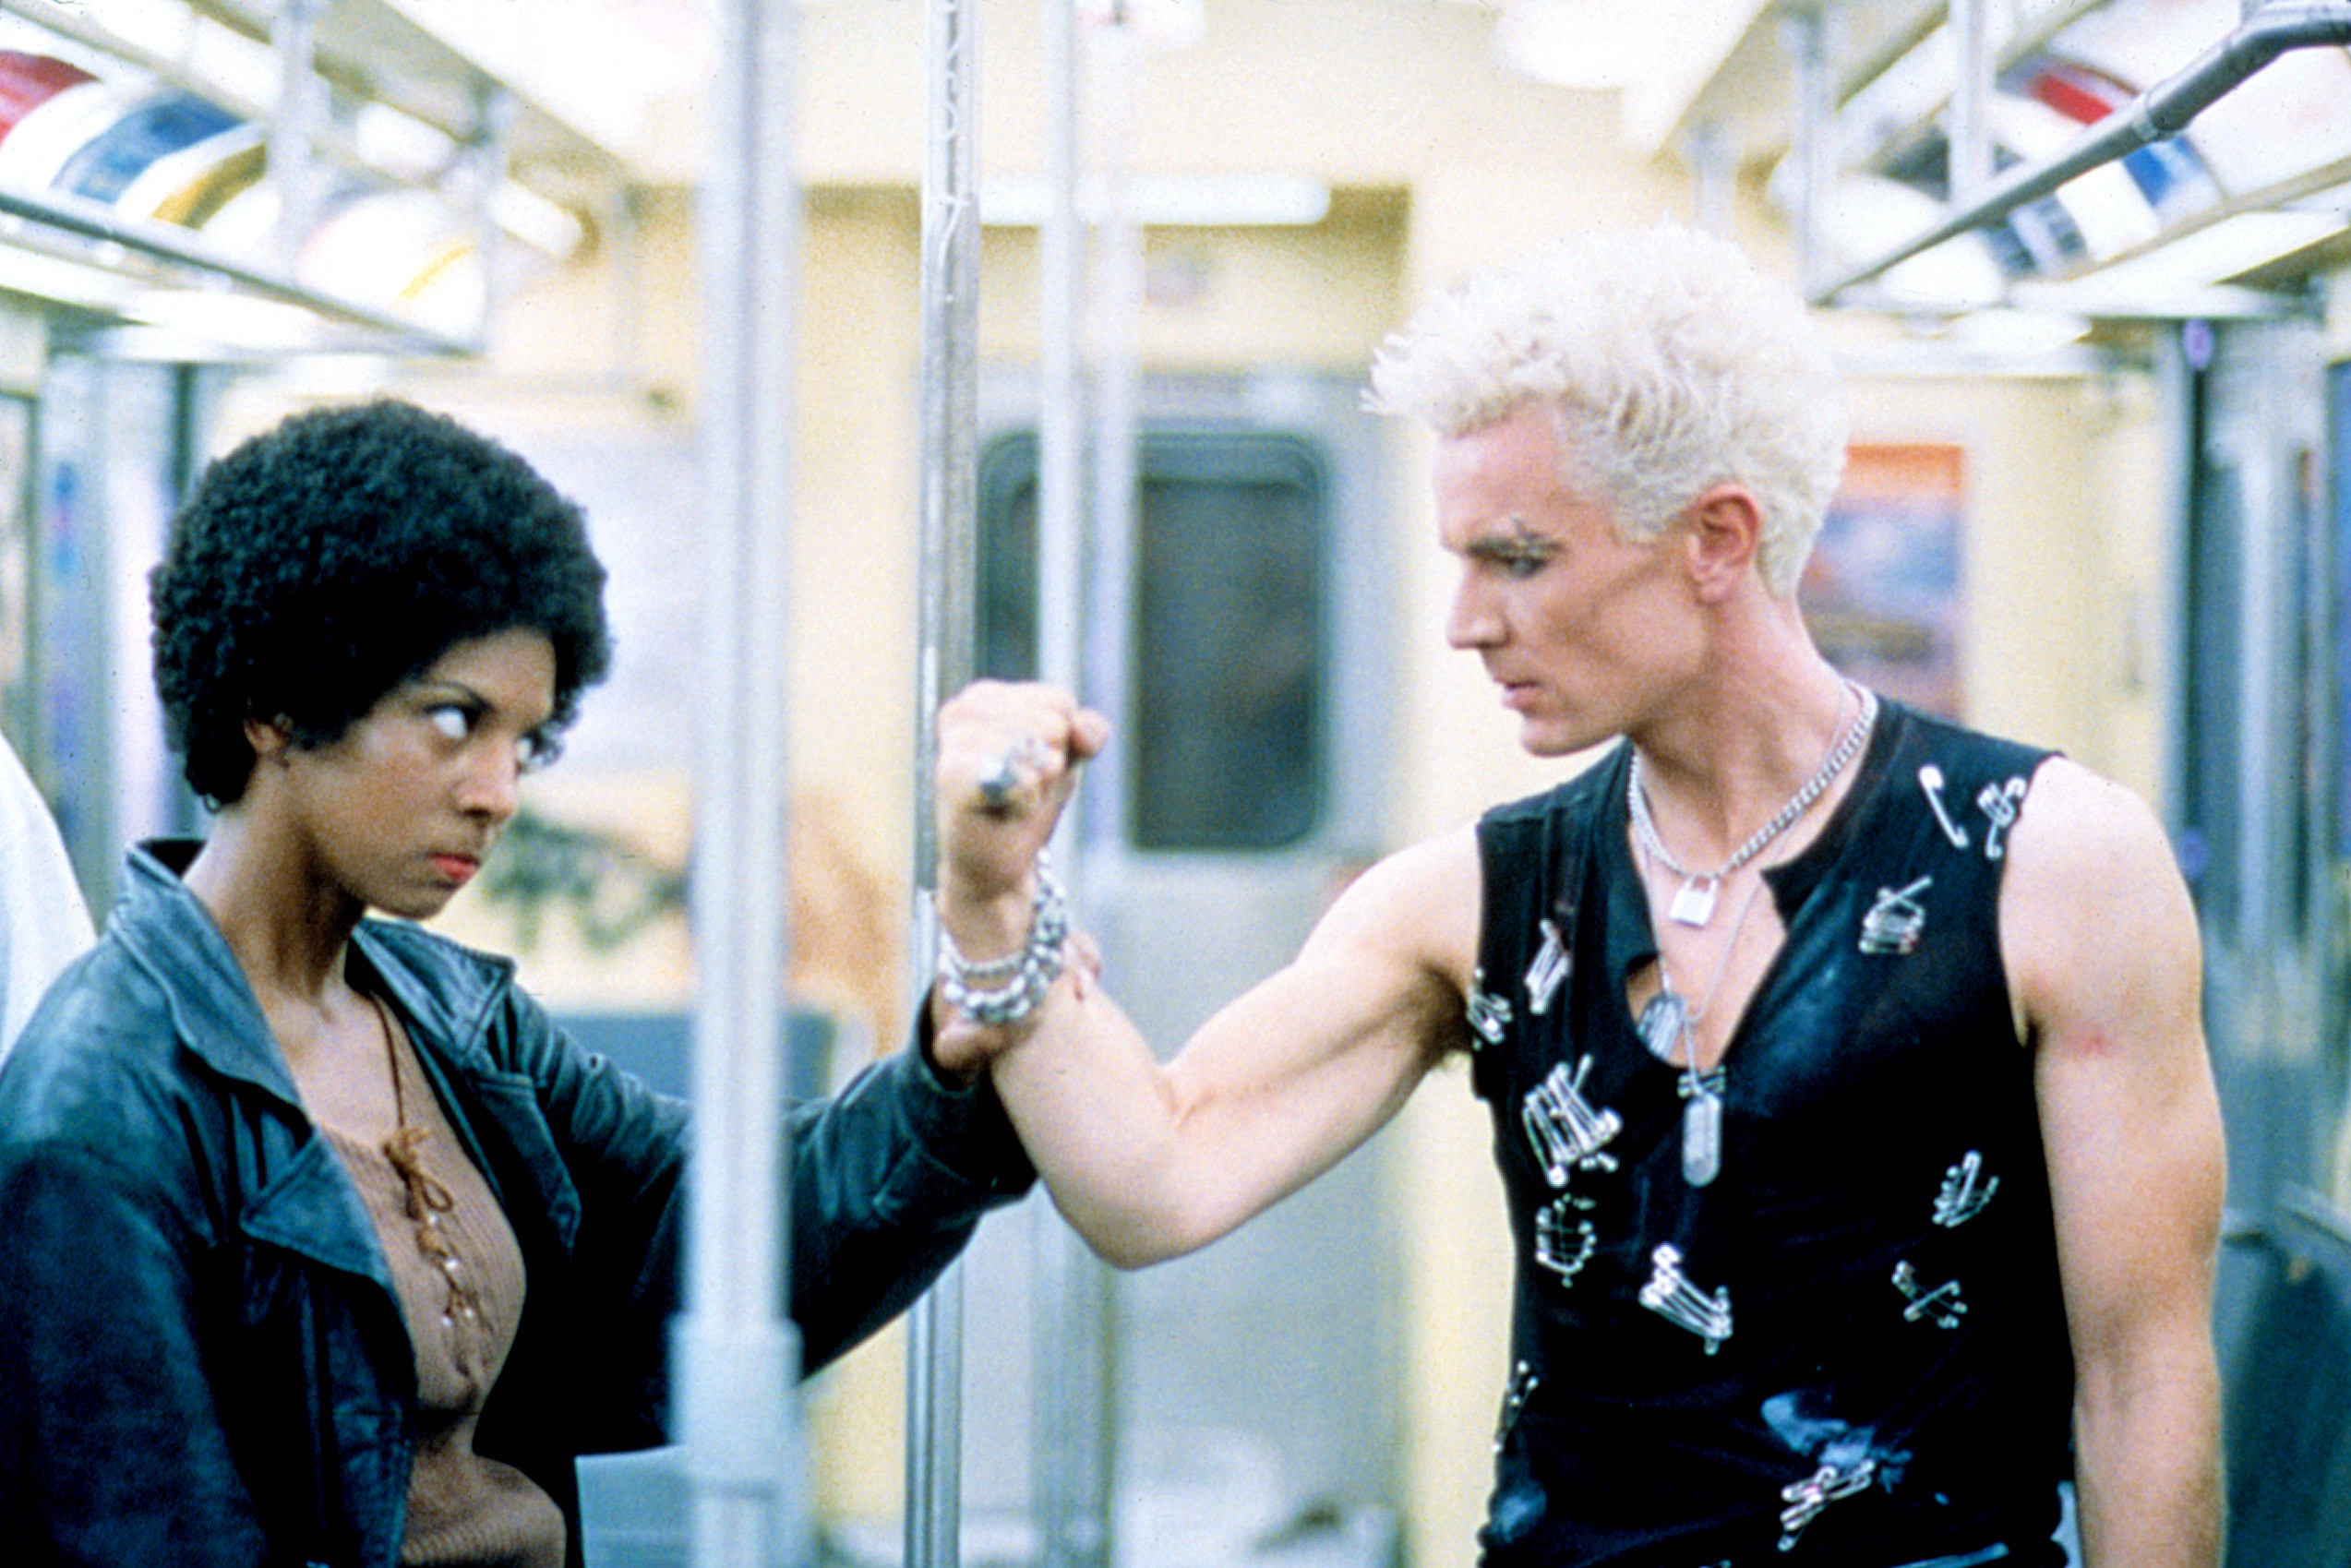 Spike fights Nikki Wood in the subway